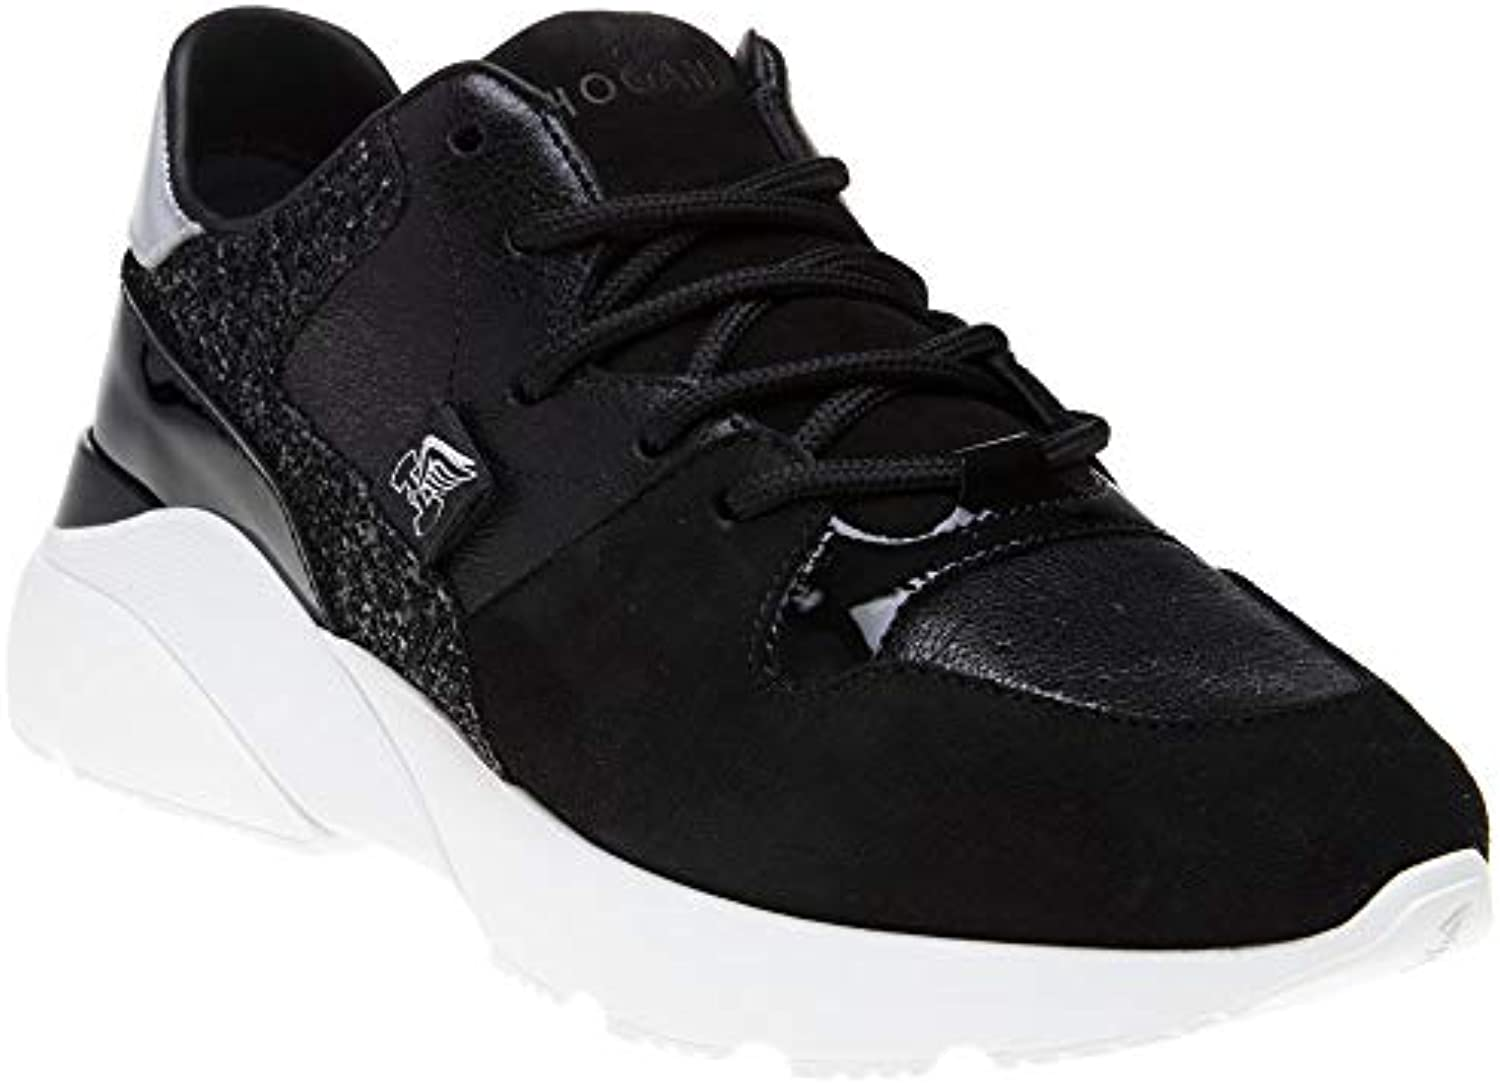 fedc17ff749a Hogan Sport Sport Sport Style Active One Trainers Black Parent B07GLLZ92B  a6e357